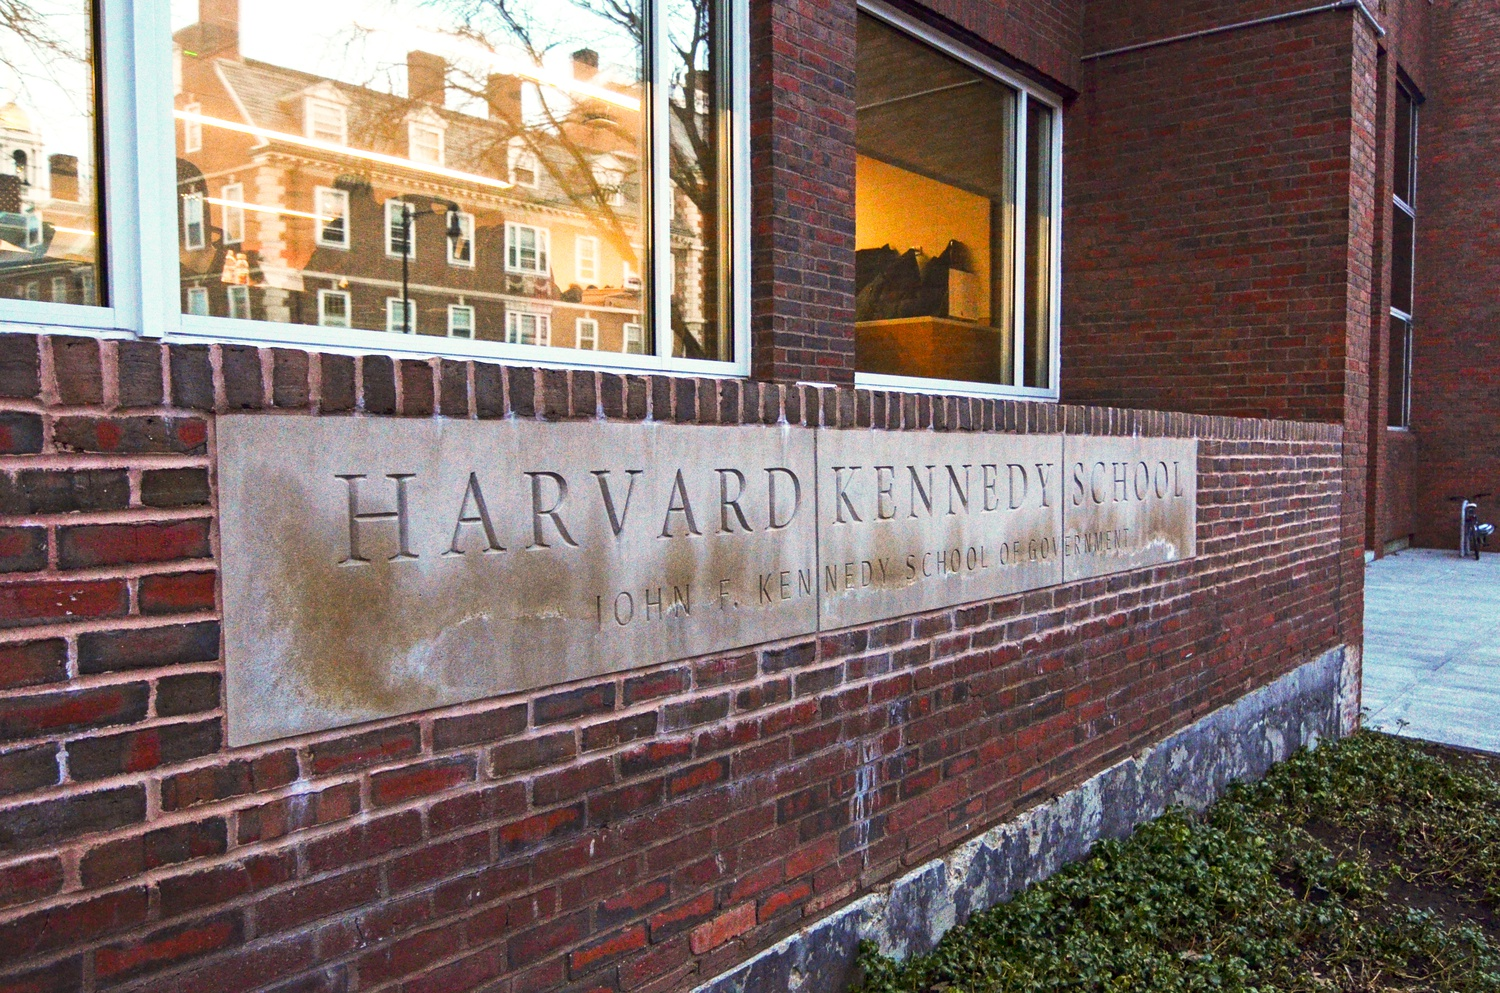 The Institute of Politics at the Harvard Kennedy School runs Director's Internships, which provide students with opportunities to explore politics and public service.